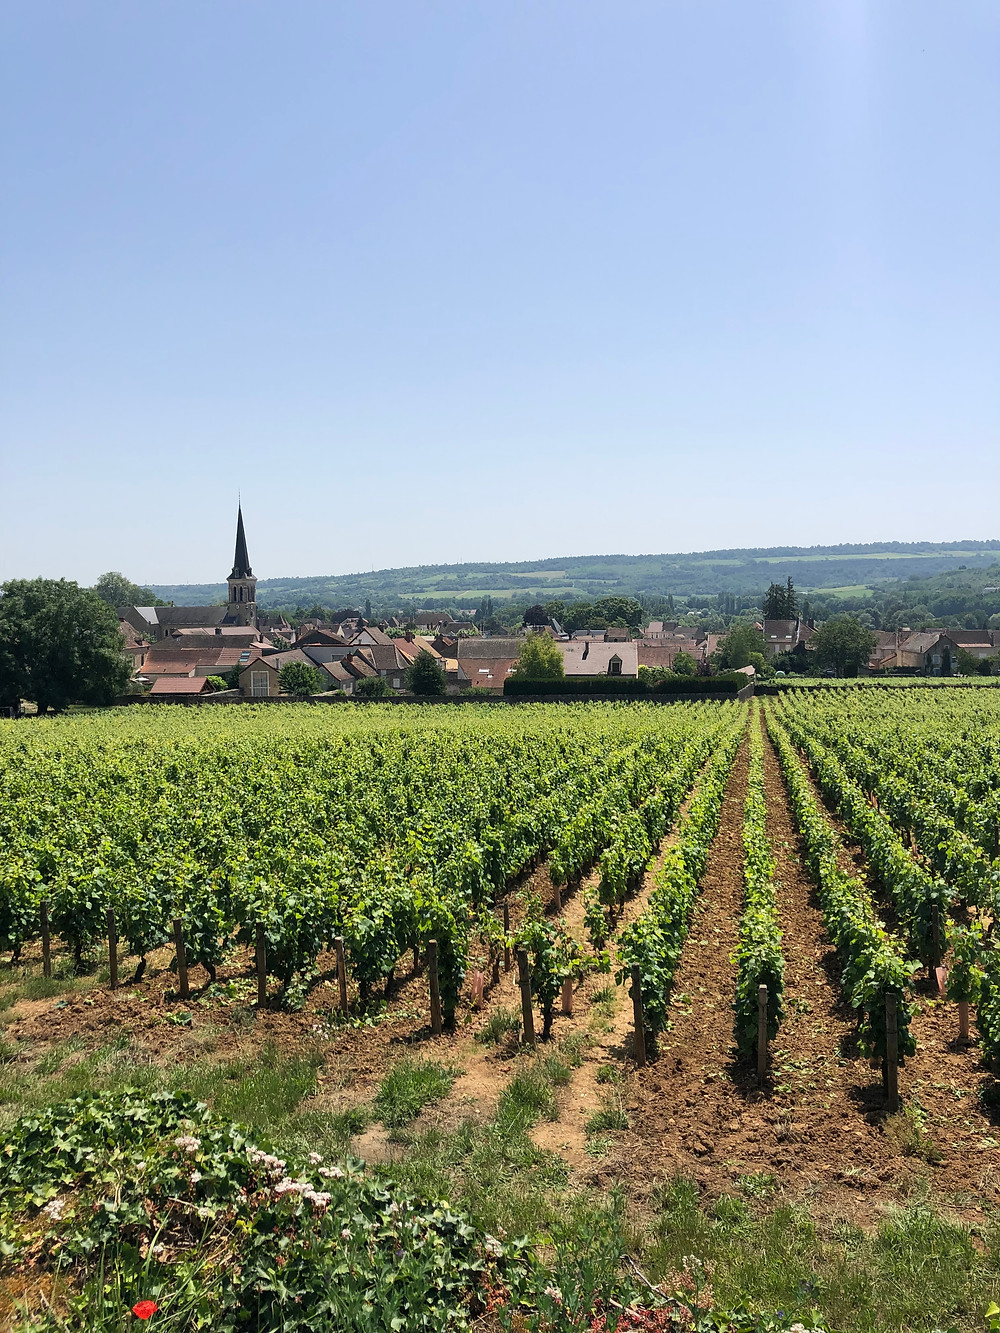 Santenay vineyard in Cote de Beaune Burgundy next to the village of Santenay and the medieval church